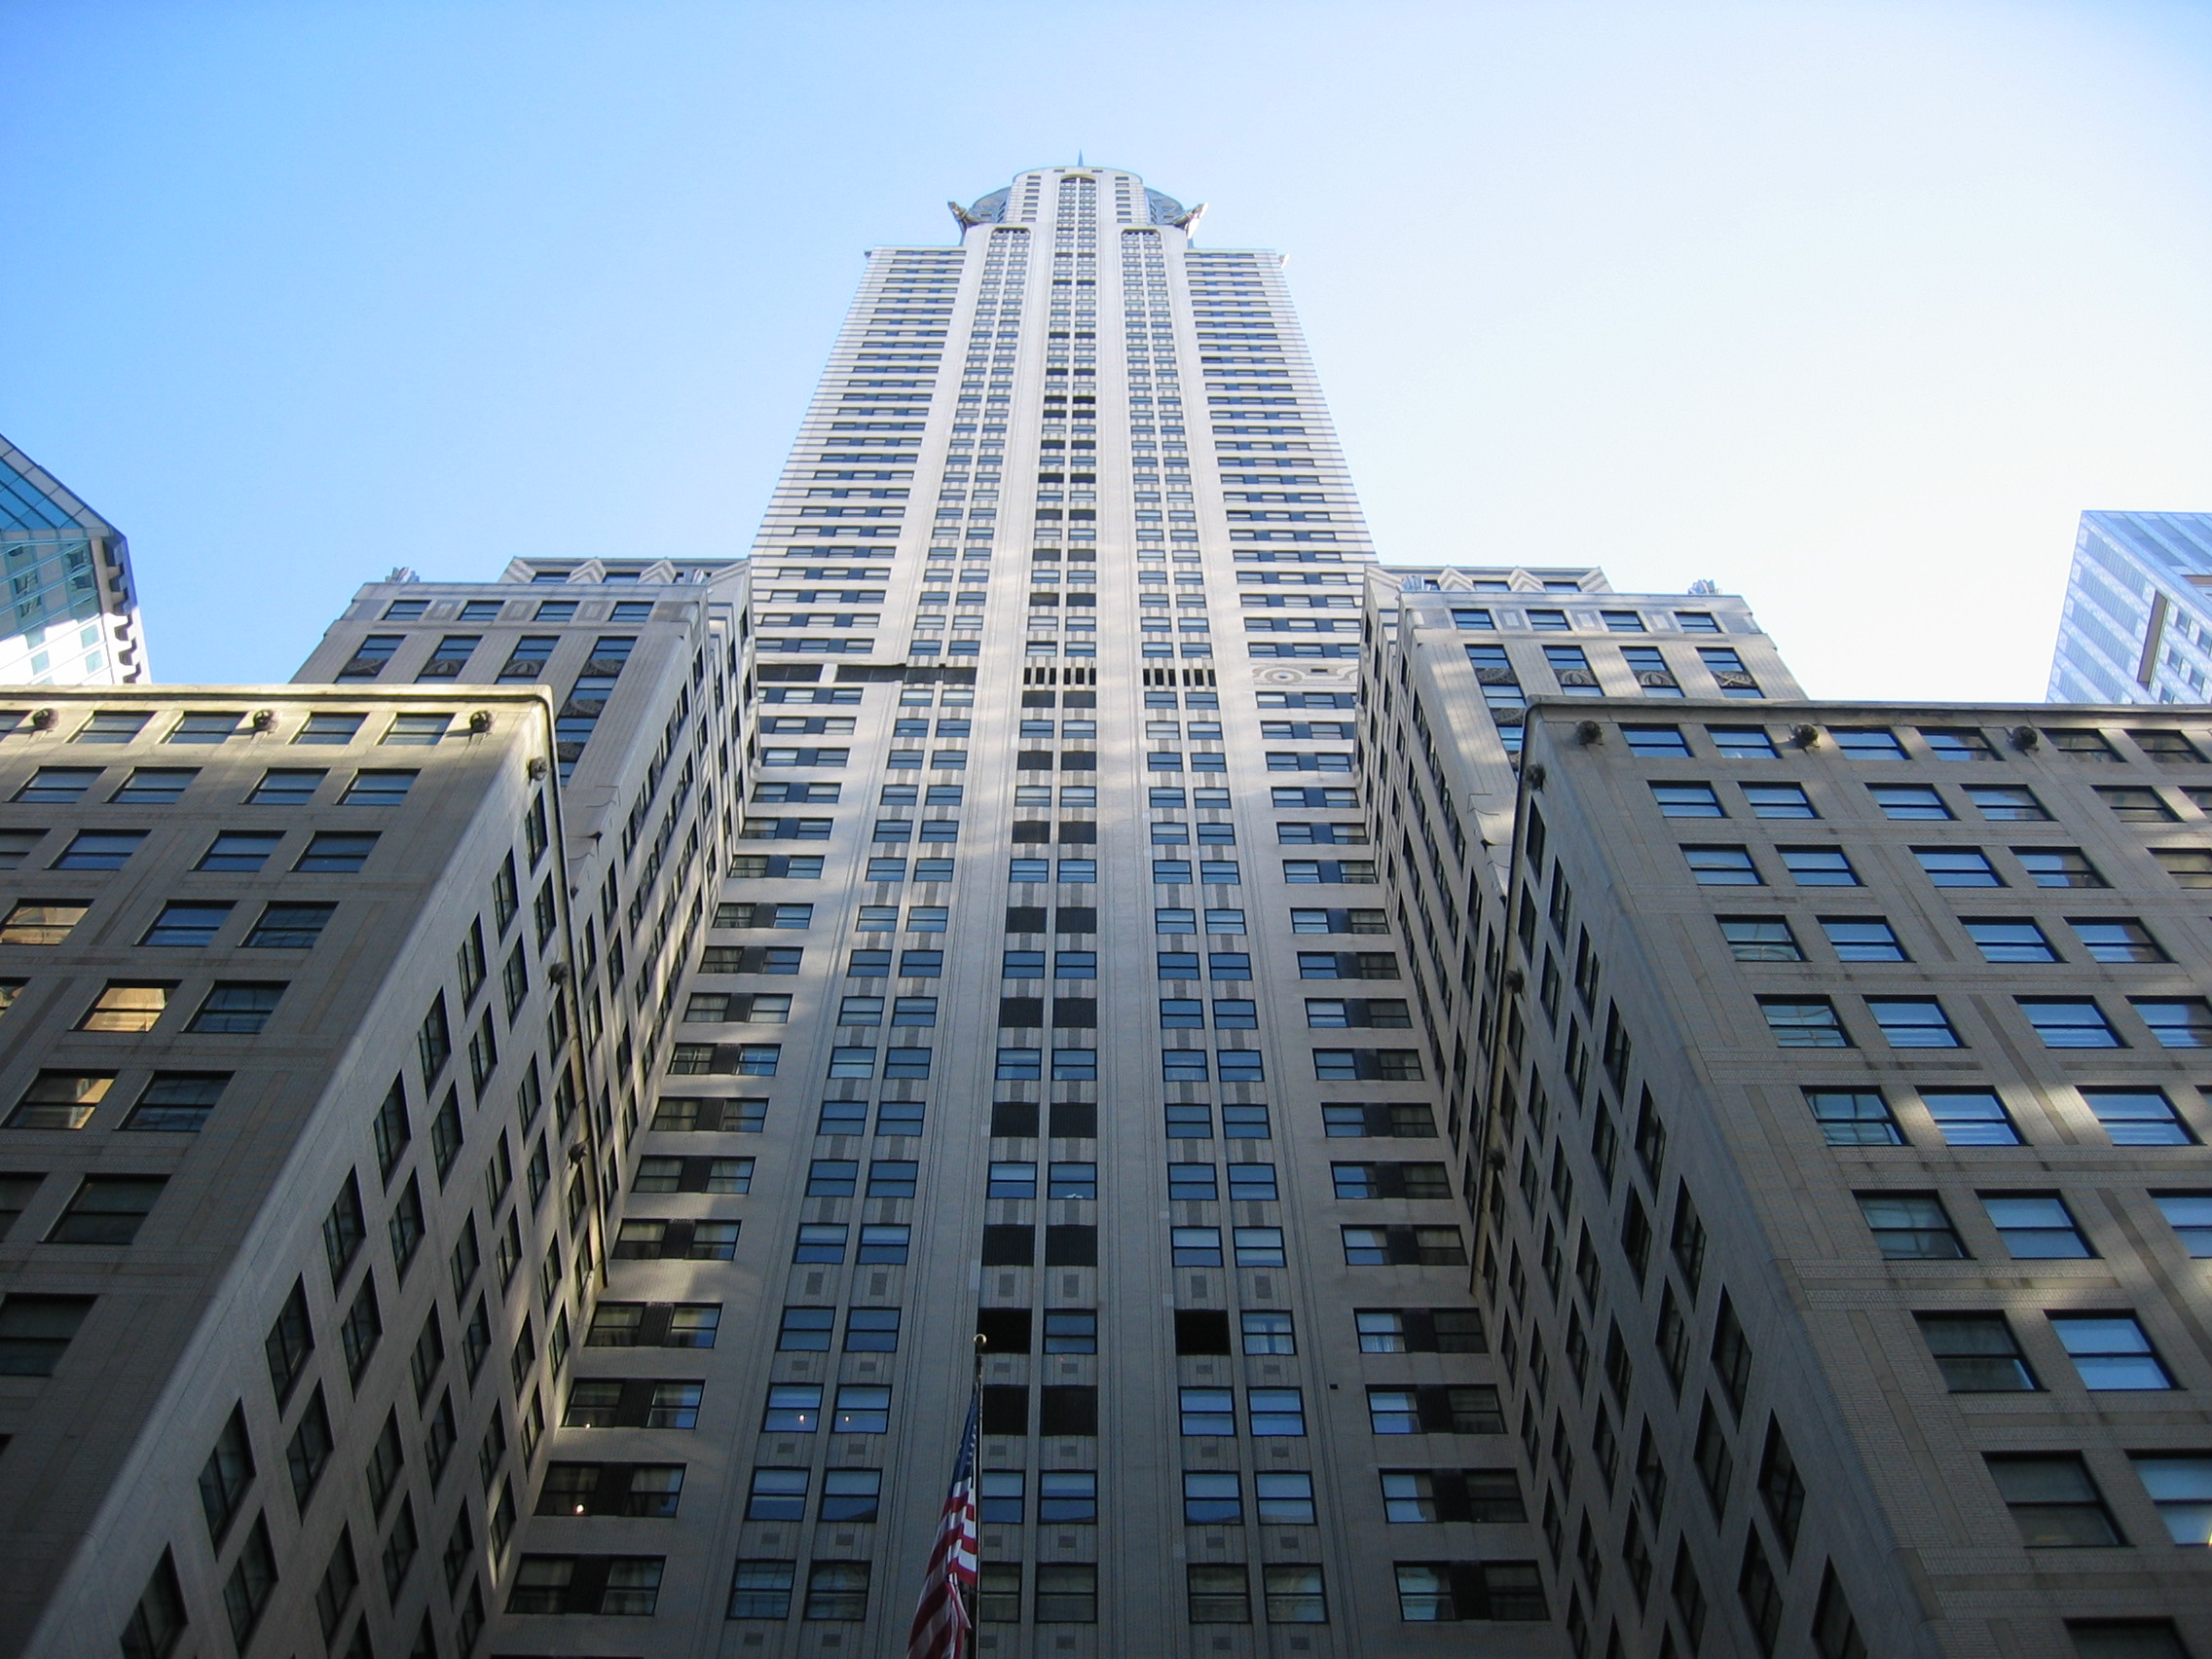 Chrysler Building Photo From Below